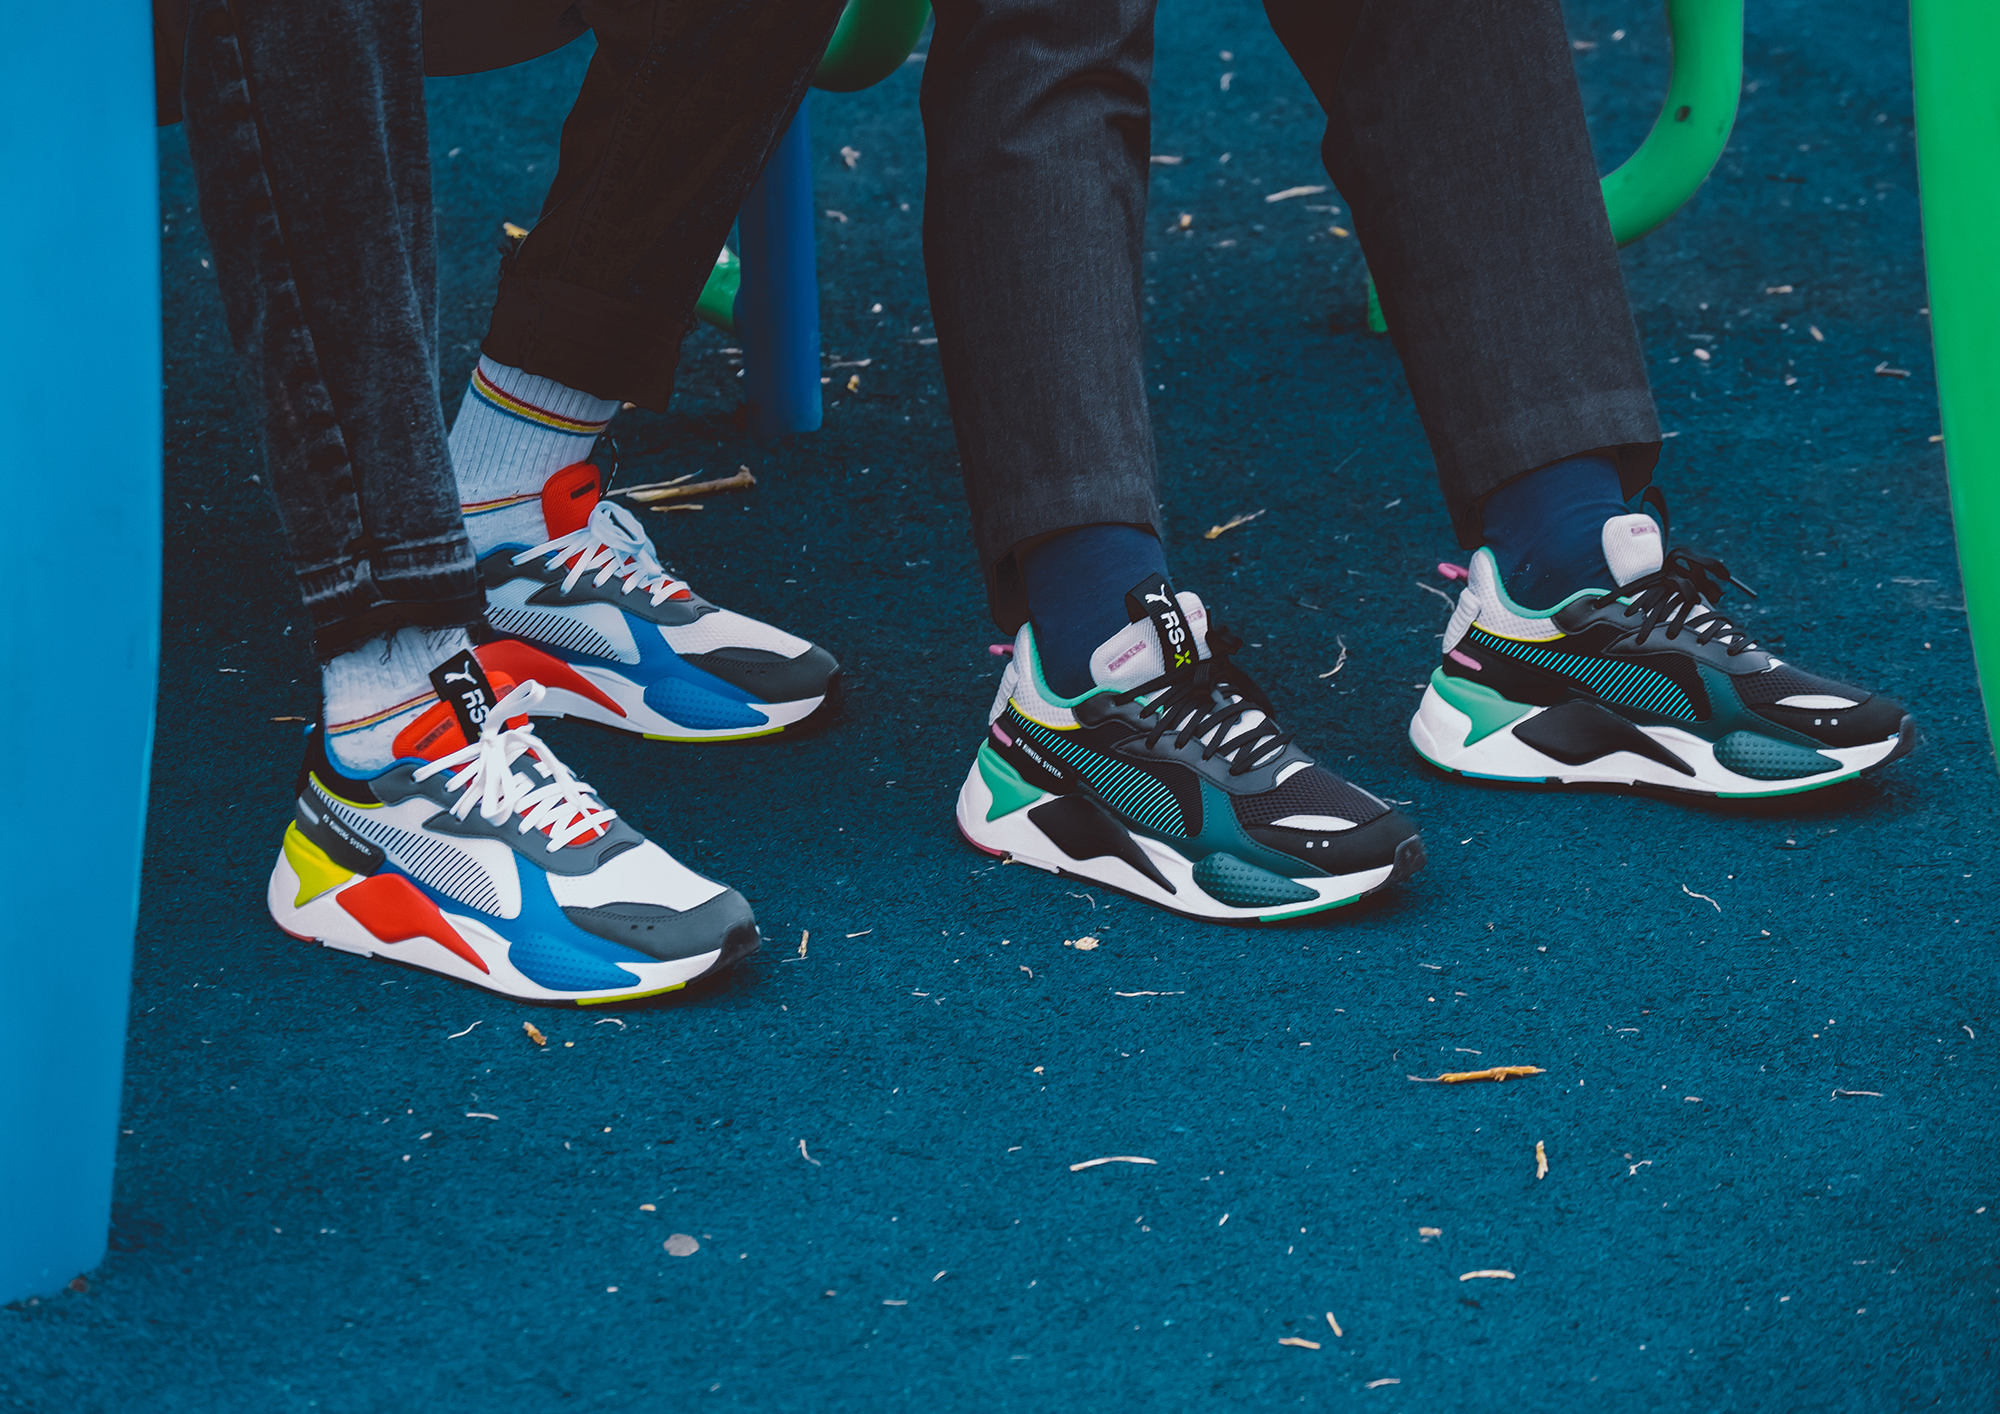 With the RS,X Toys, PUMA is taking us back to the era of iconic toys that  generations grew up with, from playing with them and how they became  collectable